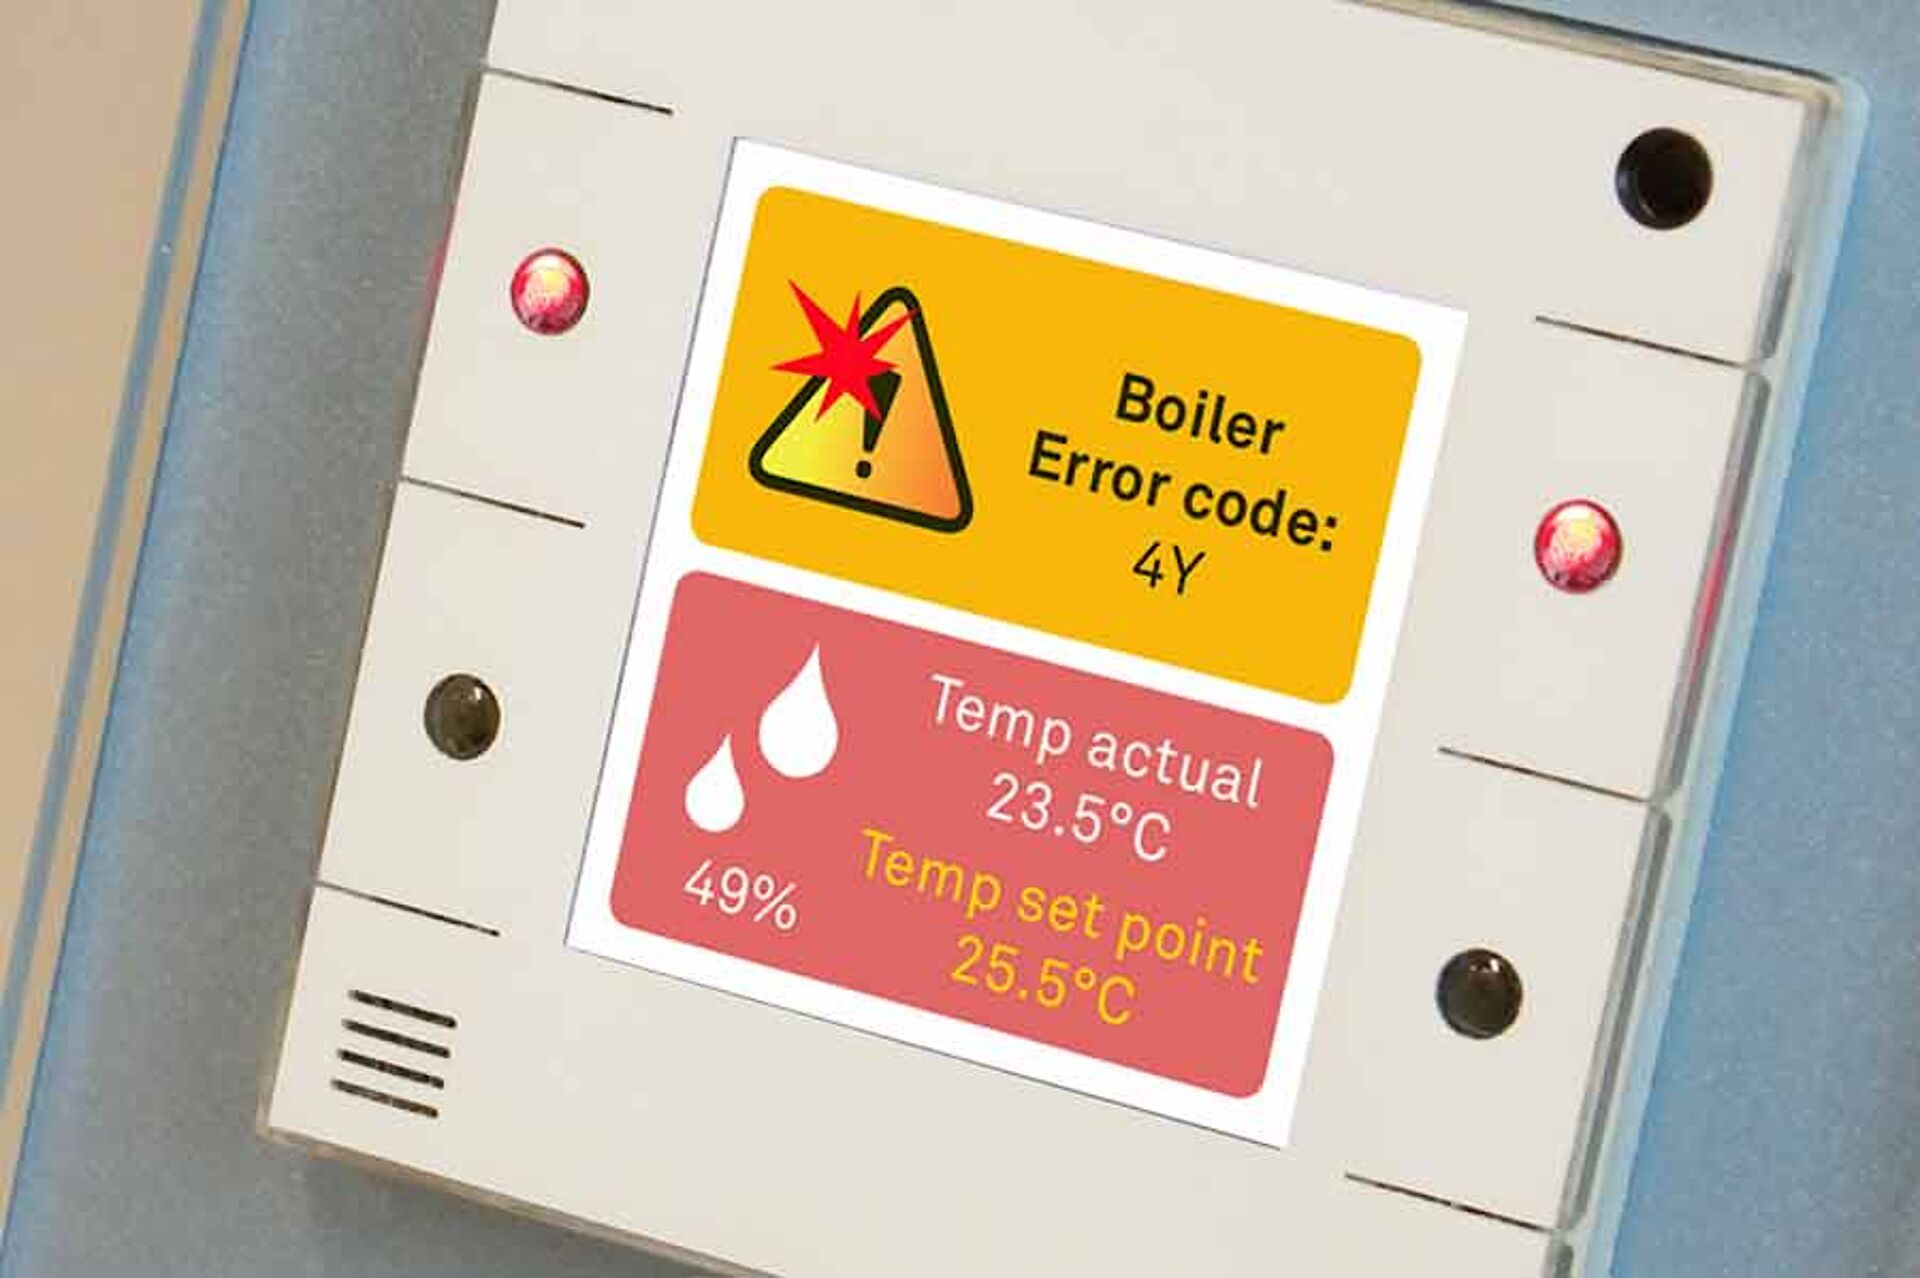 Details Fault and alarm messages - Your room controller for